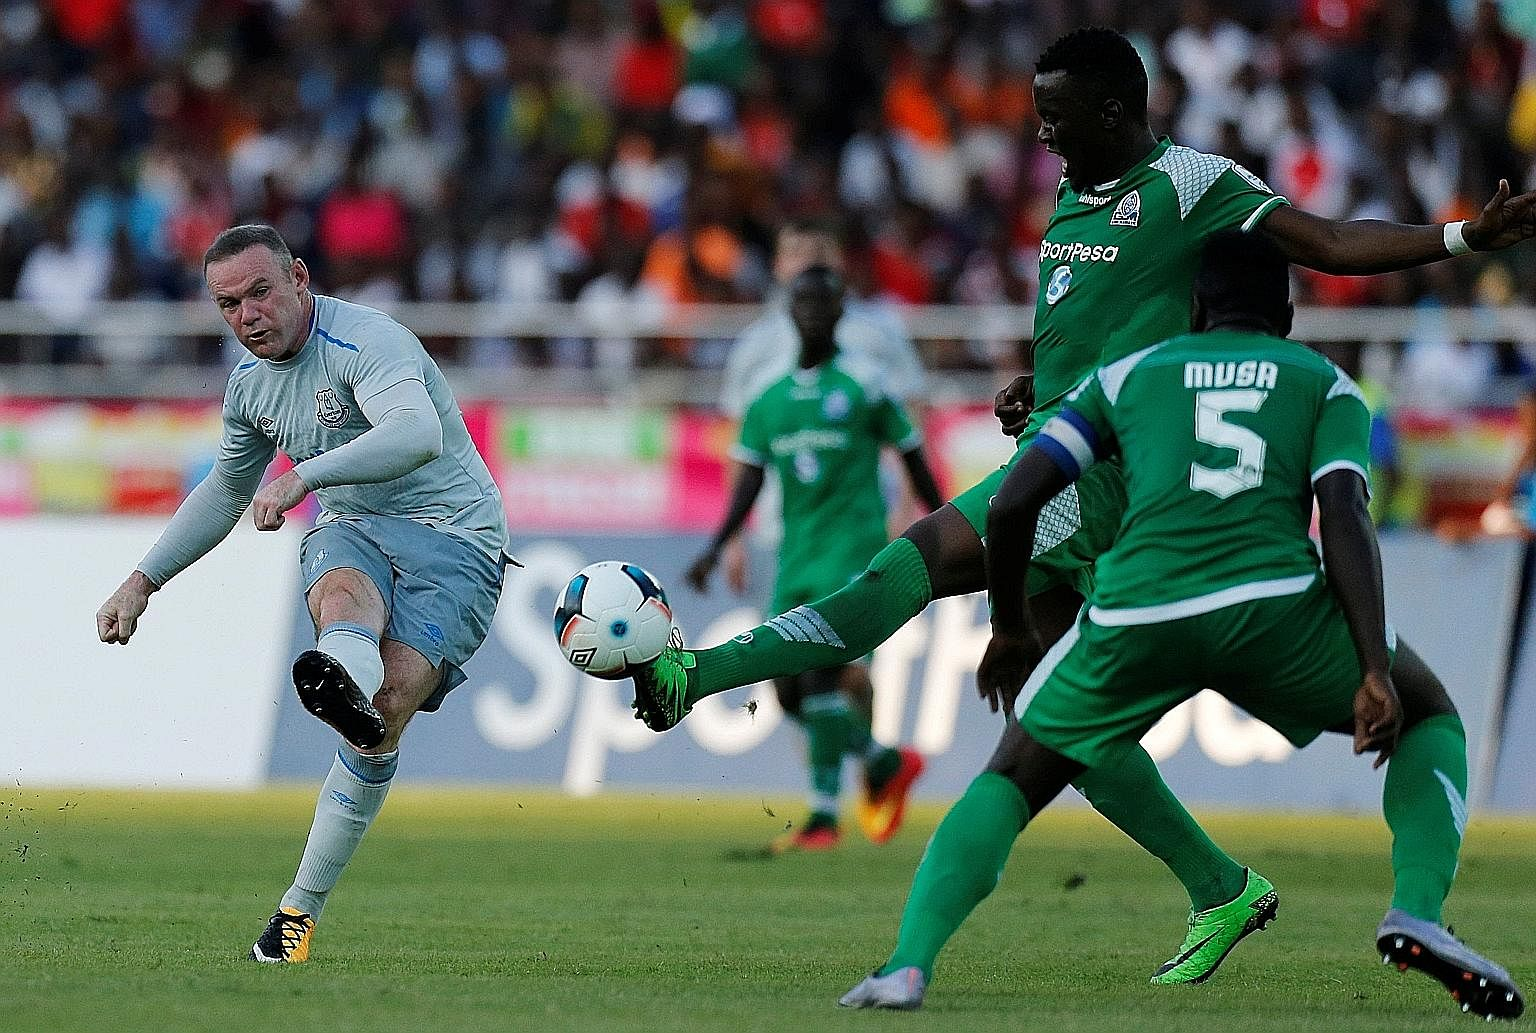 Wayne Rooney scoring Everton's first goal in their pre-season friendly against Kenya's Gor Mahia on Thursday. The Premier League club won 2-1 with teenager Kieran Dowell netting the winner. Rooney aside, Everton have been spending big this summer, si